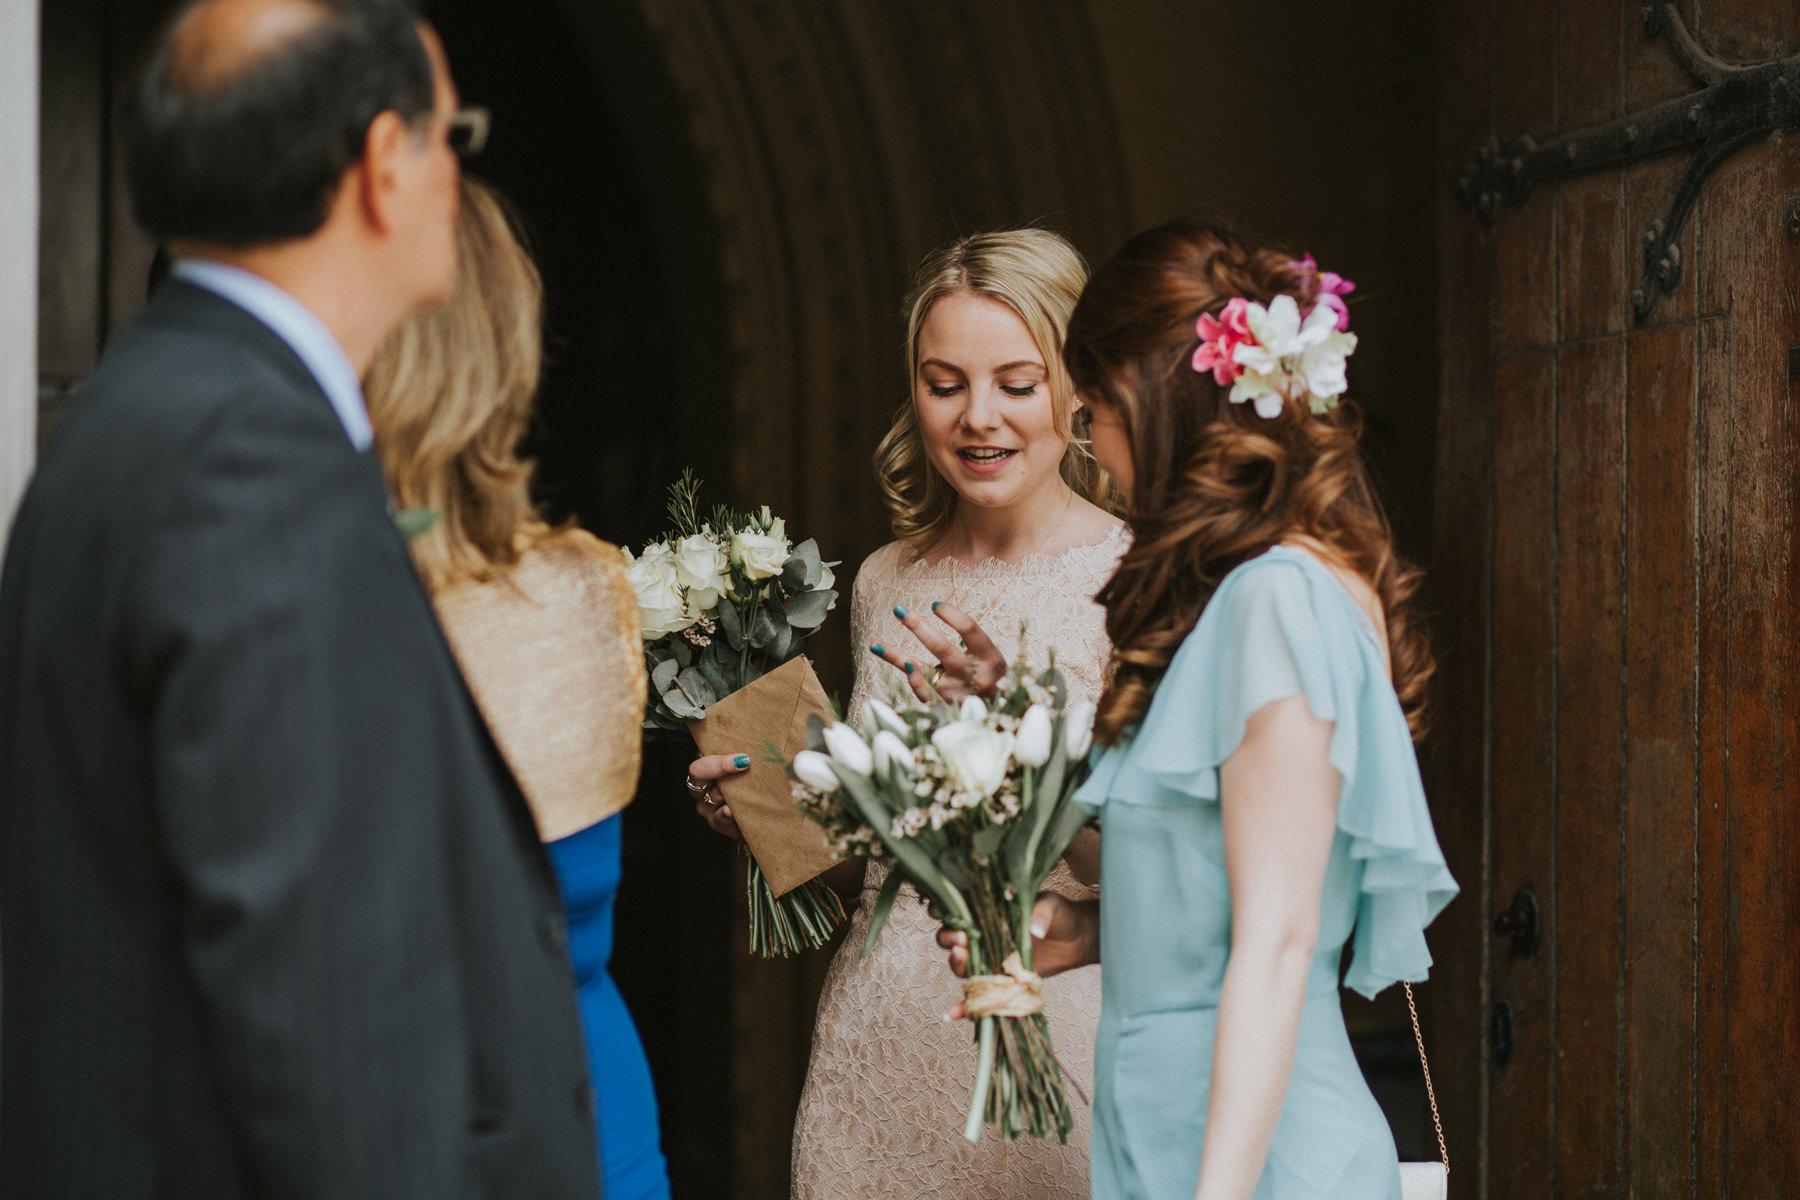 LD-356-guest-candids-outside-St-Marys-Clapham-London-reportage-wedding.jpg